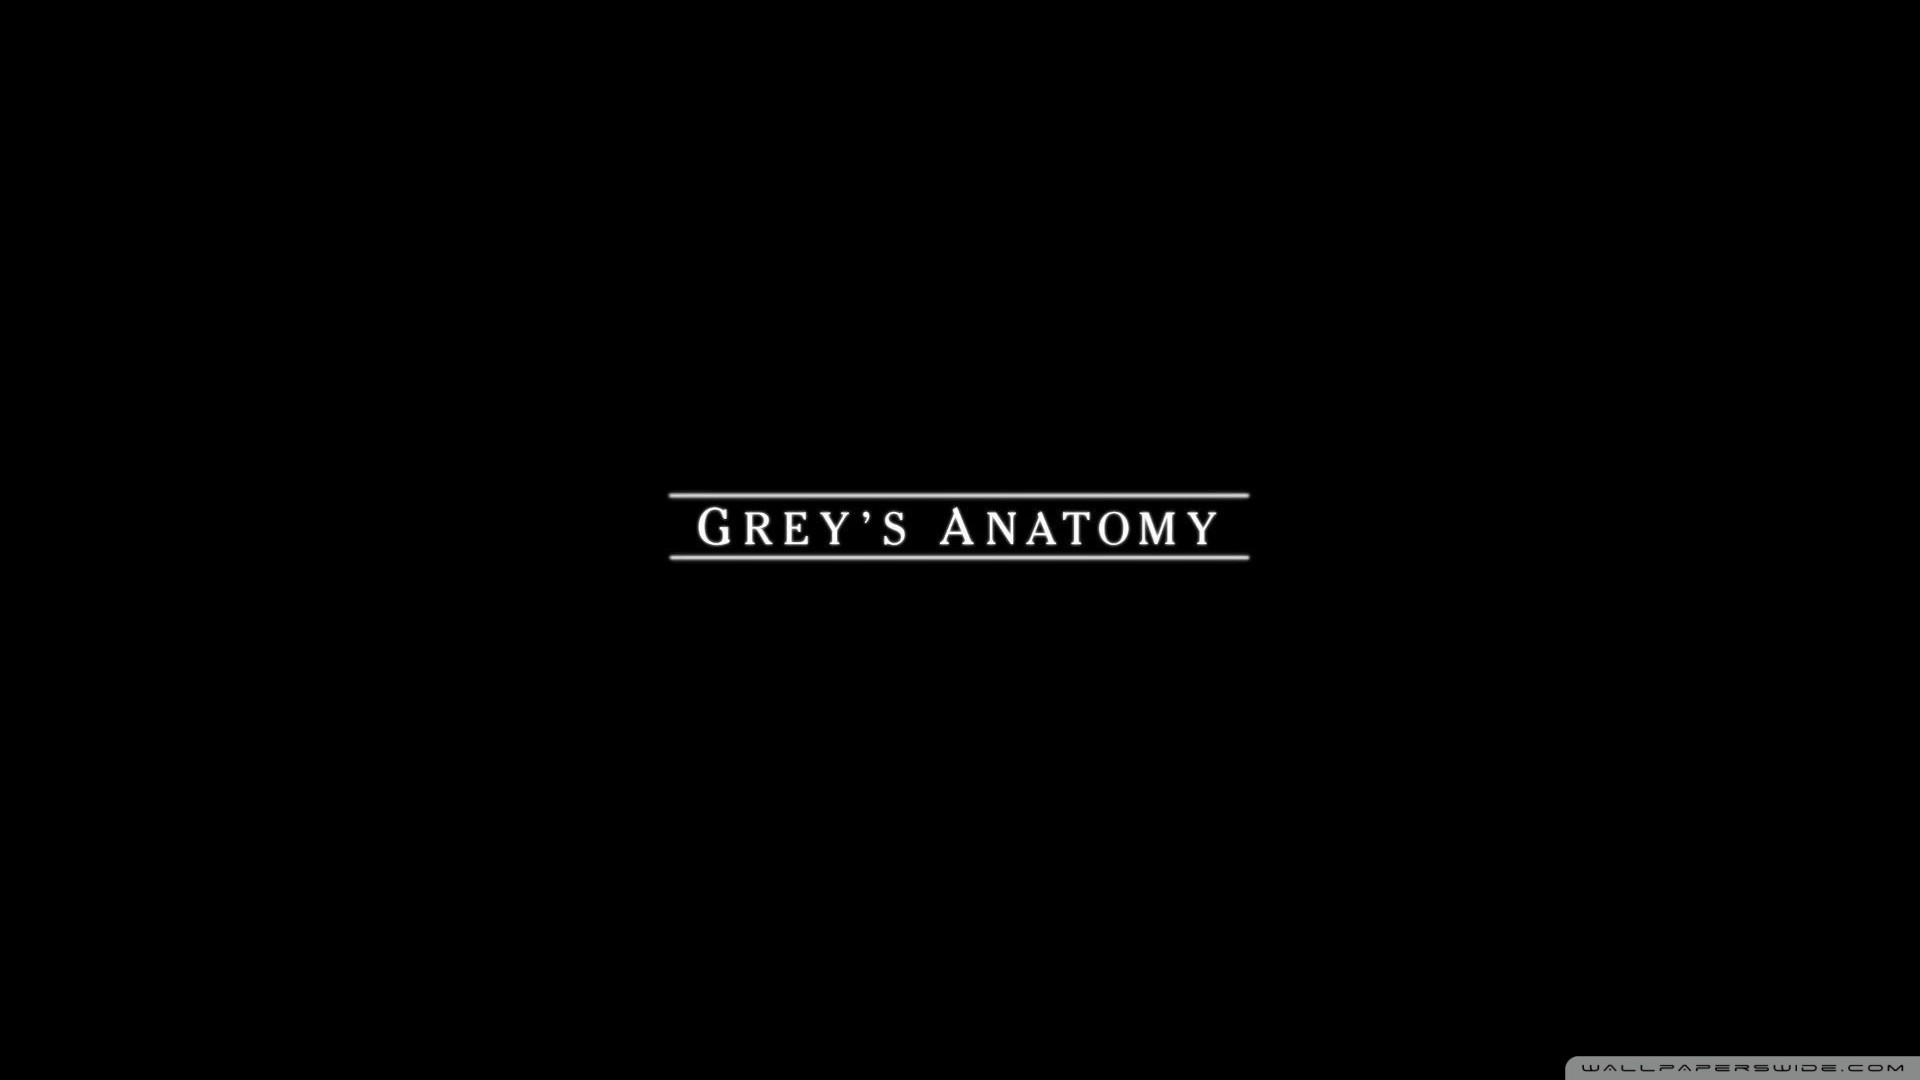 Greys Anatomy HD Wallpapers (79+ images)